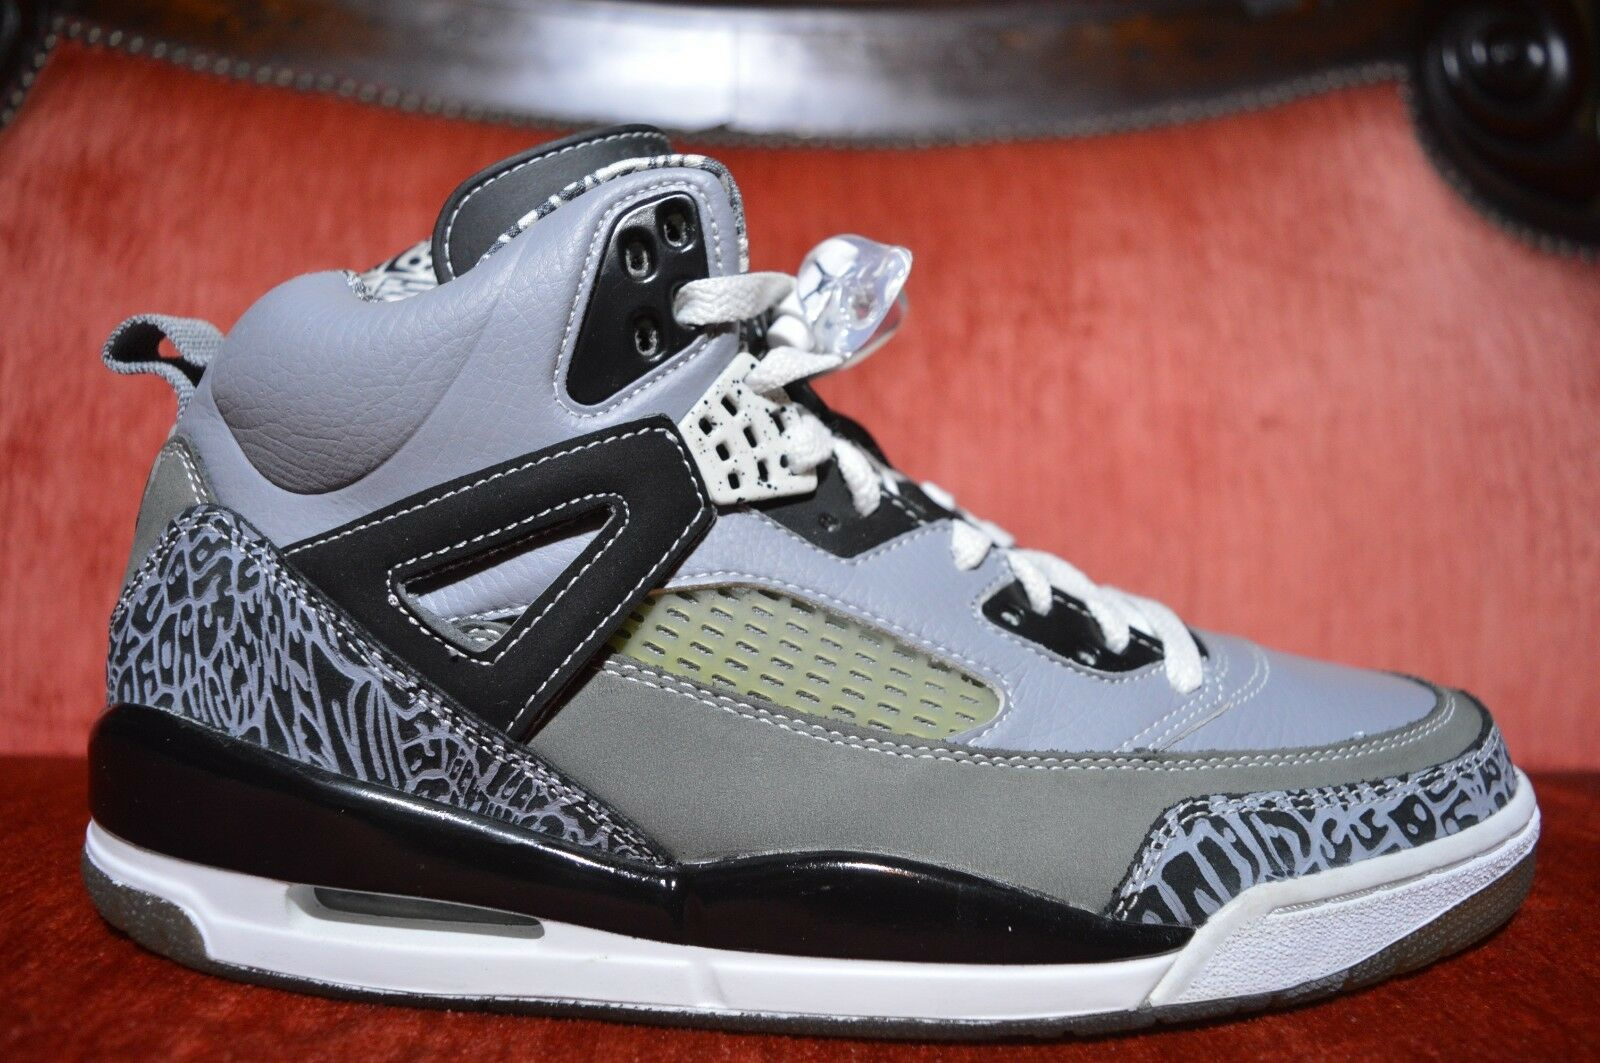 NEW Nike Air JORDAN SPIZIKE STEALTH BLACK WHITE GREY GRAPHITE 10.5 315371-091